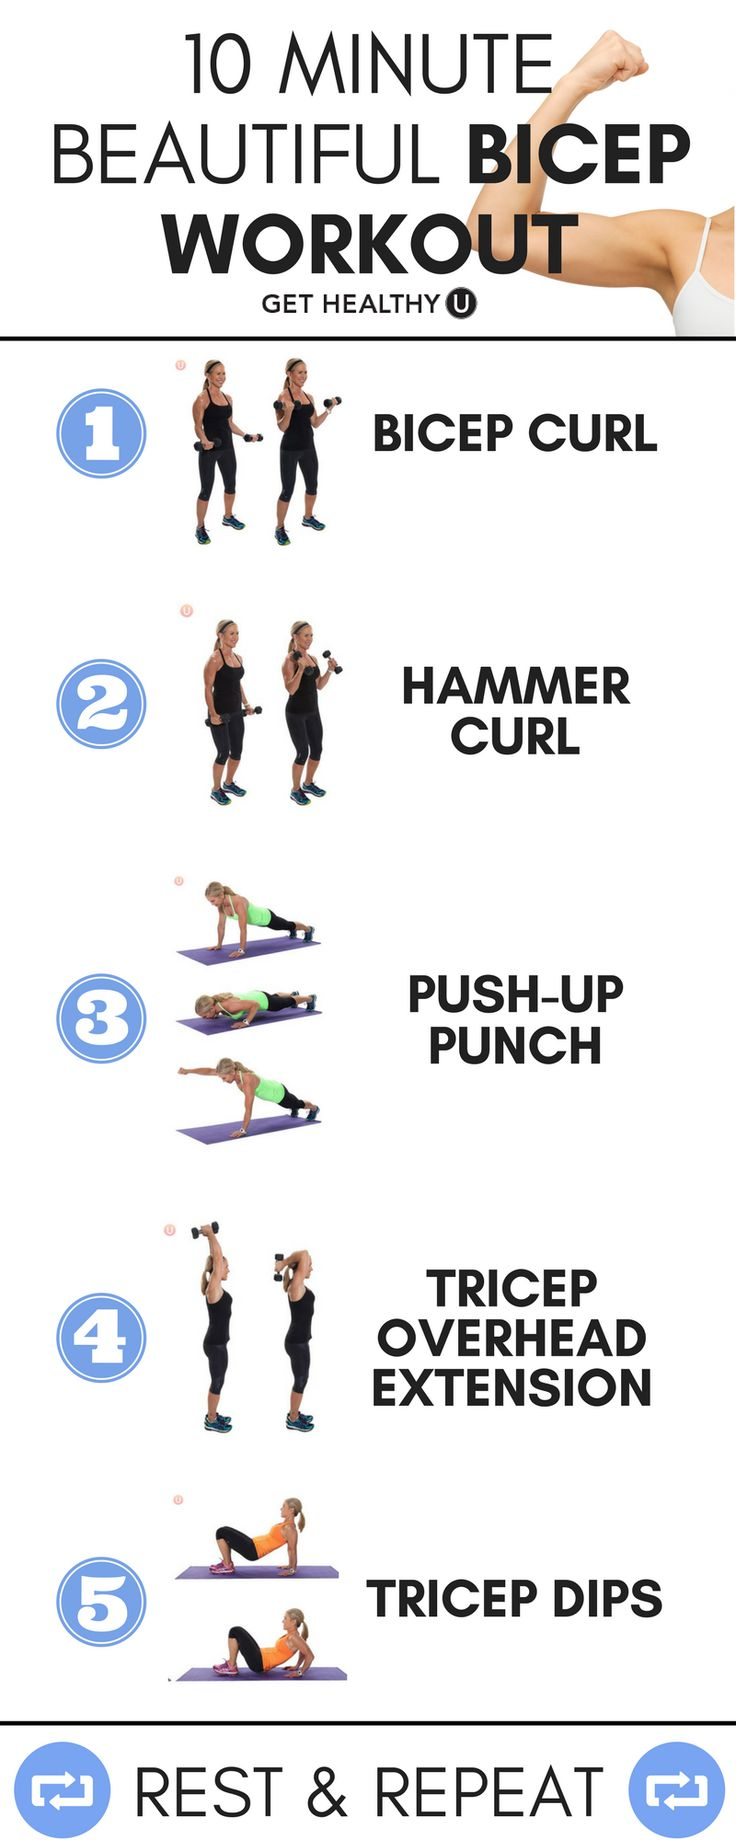 If you want beautiful biceps, try this 10 minute beautiful bicep workout! These 5 moves will tone those arms and have you feeling super confident! This quick workout is easy to do, requires minimal equipment and you can do it at home!